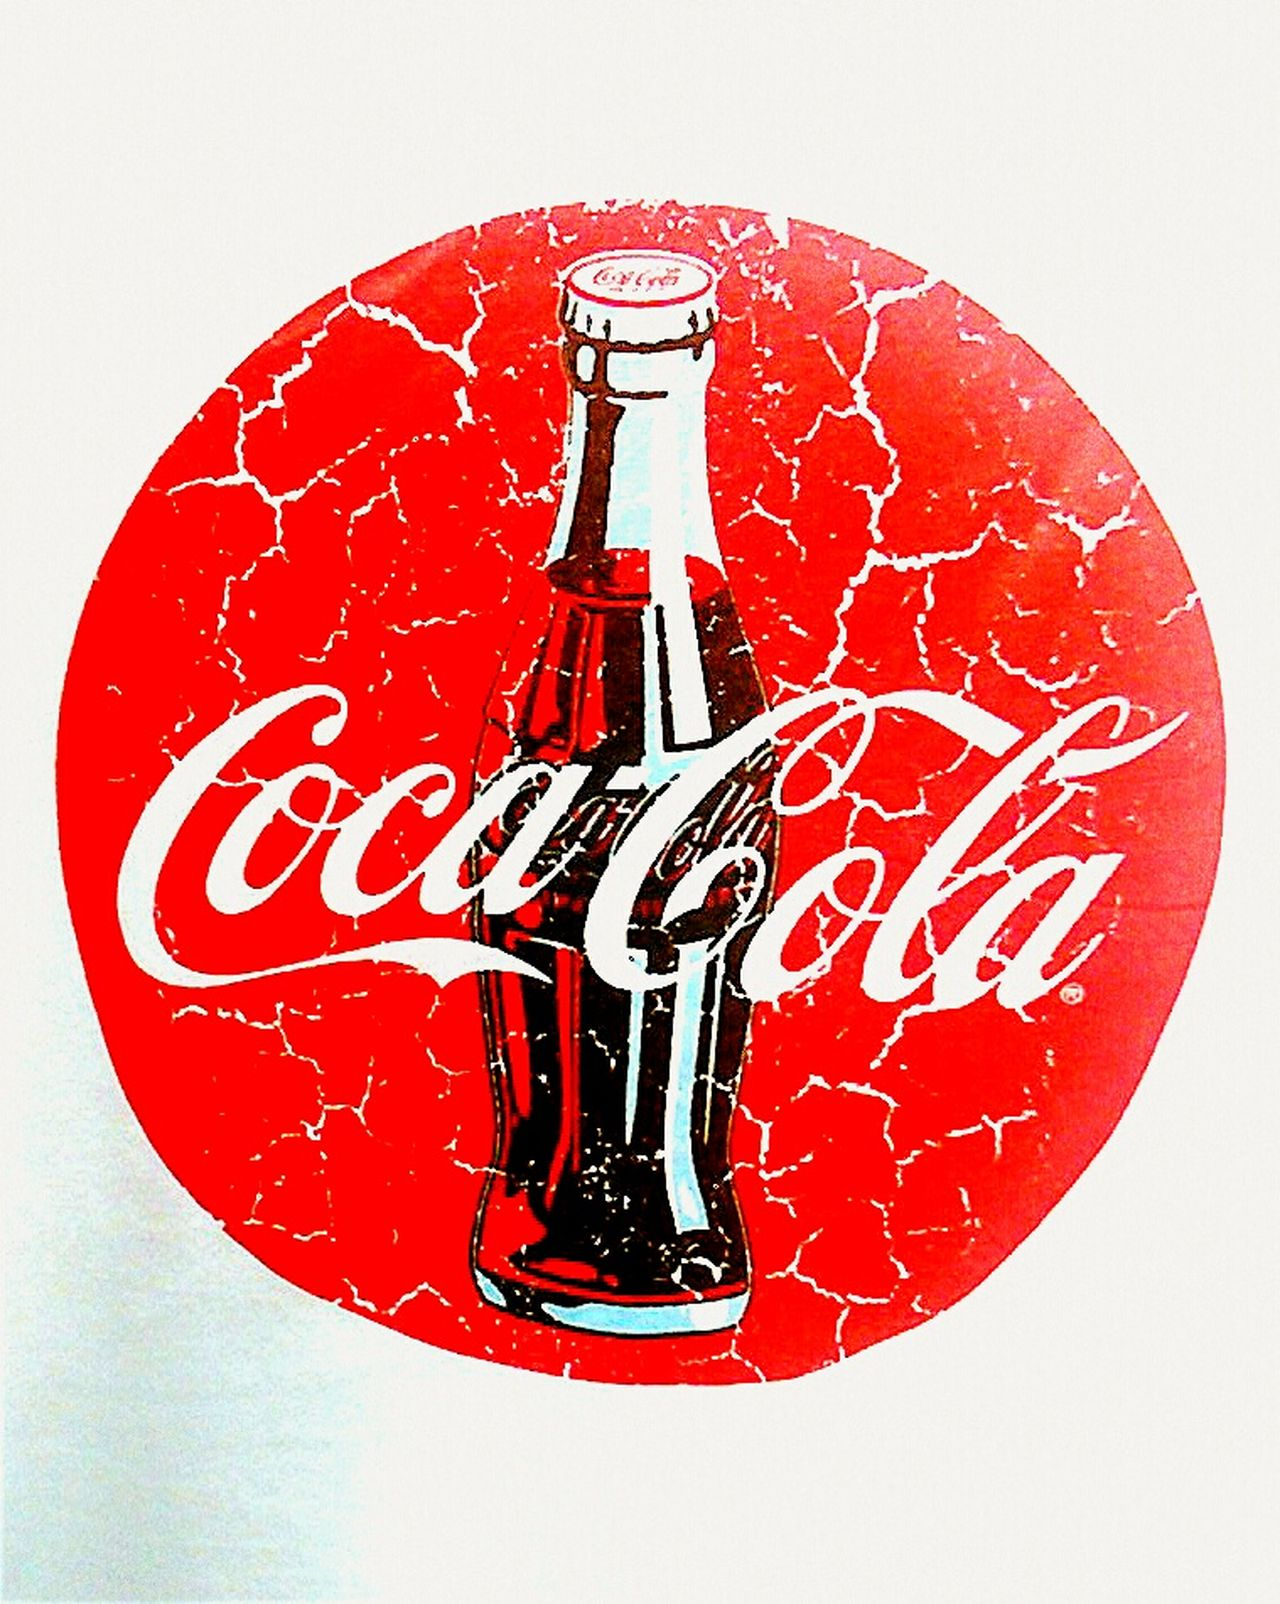 Coke Coca~Cola ® Coca-cola Signs Coca~cola Coca~Cola Signs Drink Coca~cola ® Enjoy Coca~Cola Sign The Dynamic Ribbon™ Coca-Cola, Label/logo/sign Refreshing Coca-cola Drink Coca-cola Coca Cola ✌ Coca-Cola ❤ Cocacola Coke Design Coca~Cola Signage Coca~Cola Labeling Coca Cola Drinking Coke Coca Cola ❤️ Drink Coke Signs, Signs, & More Signs SIGN.